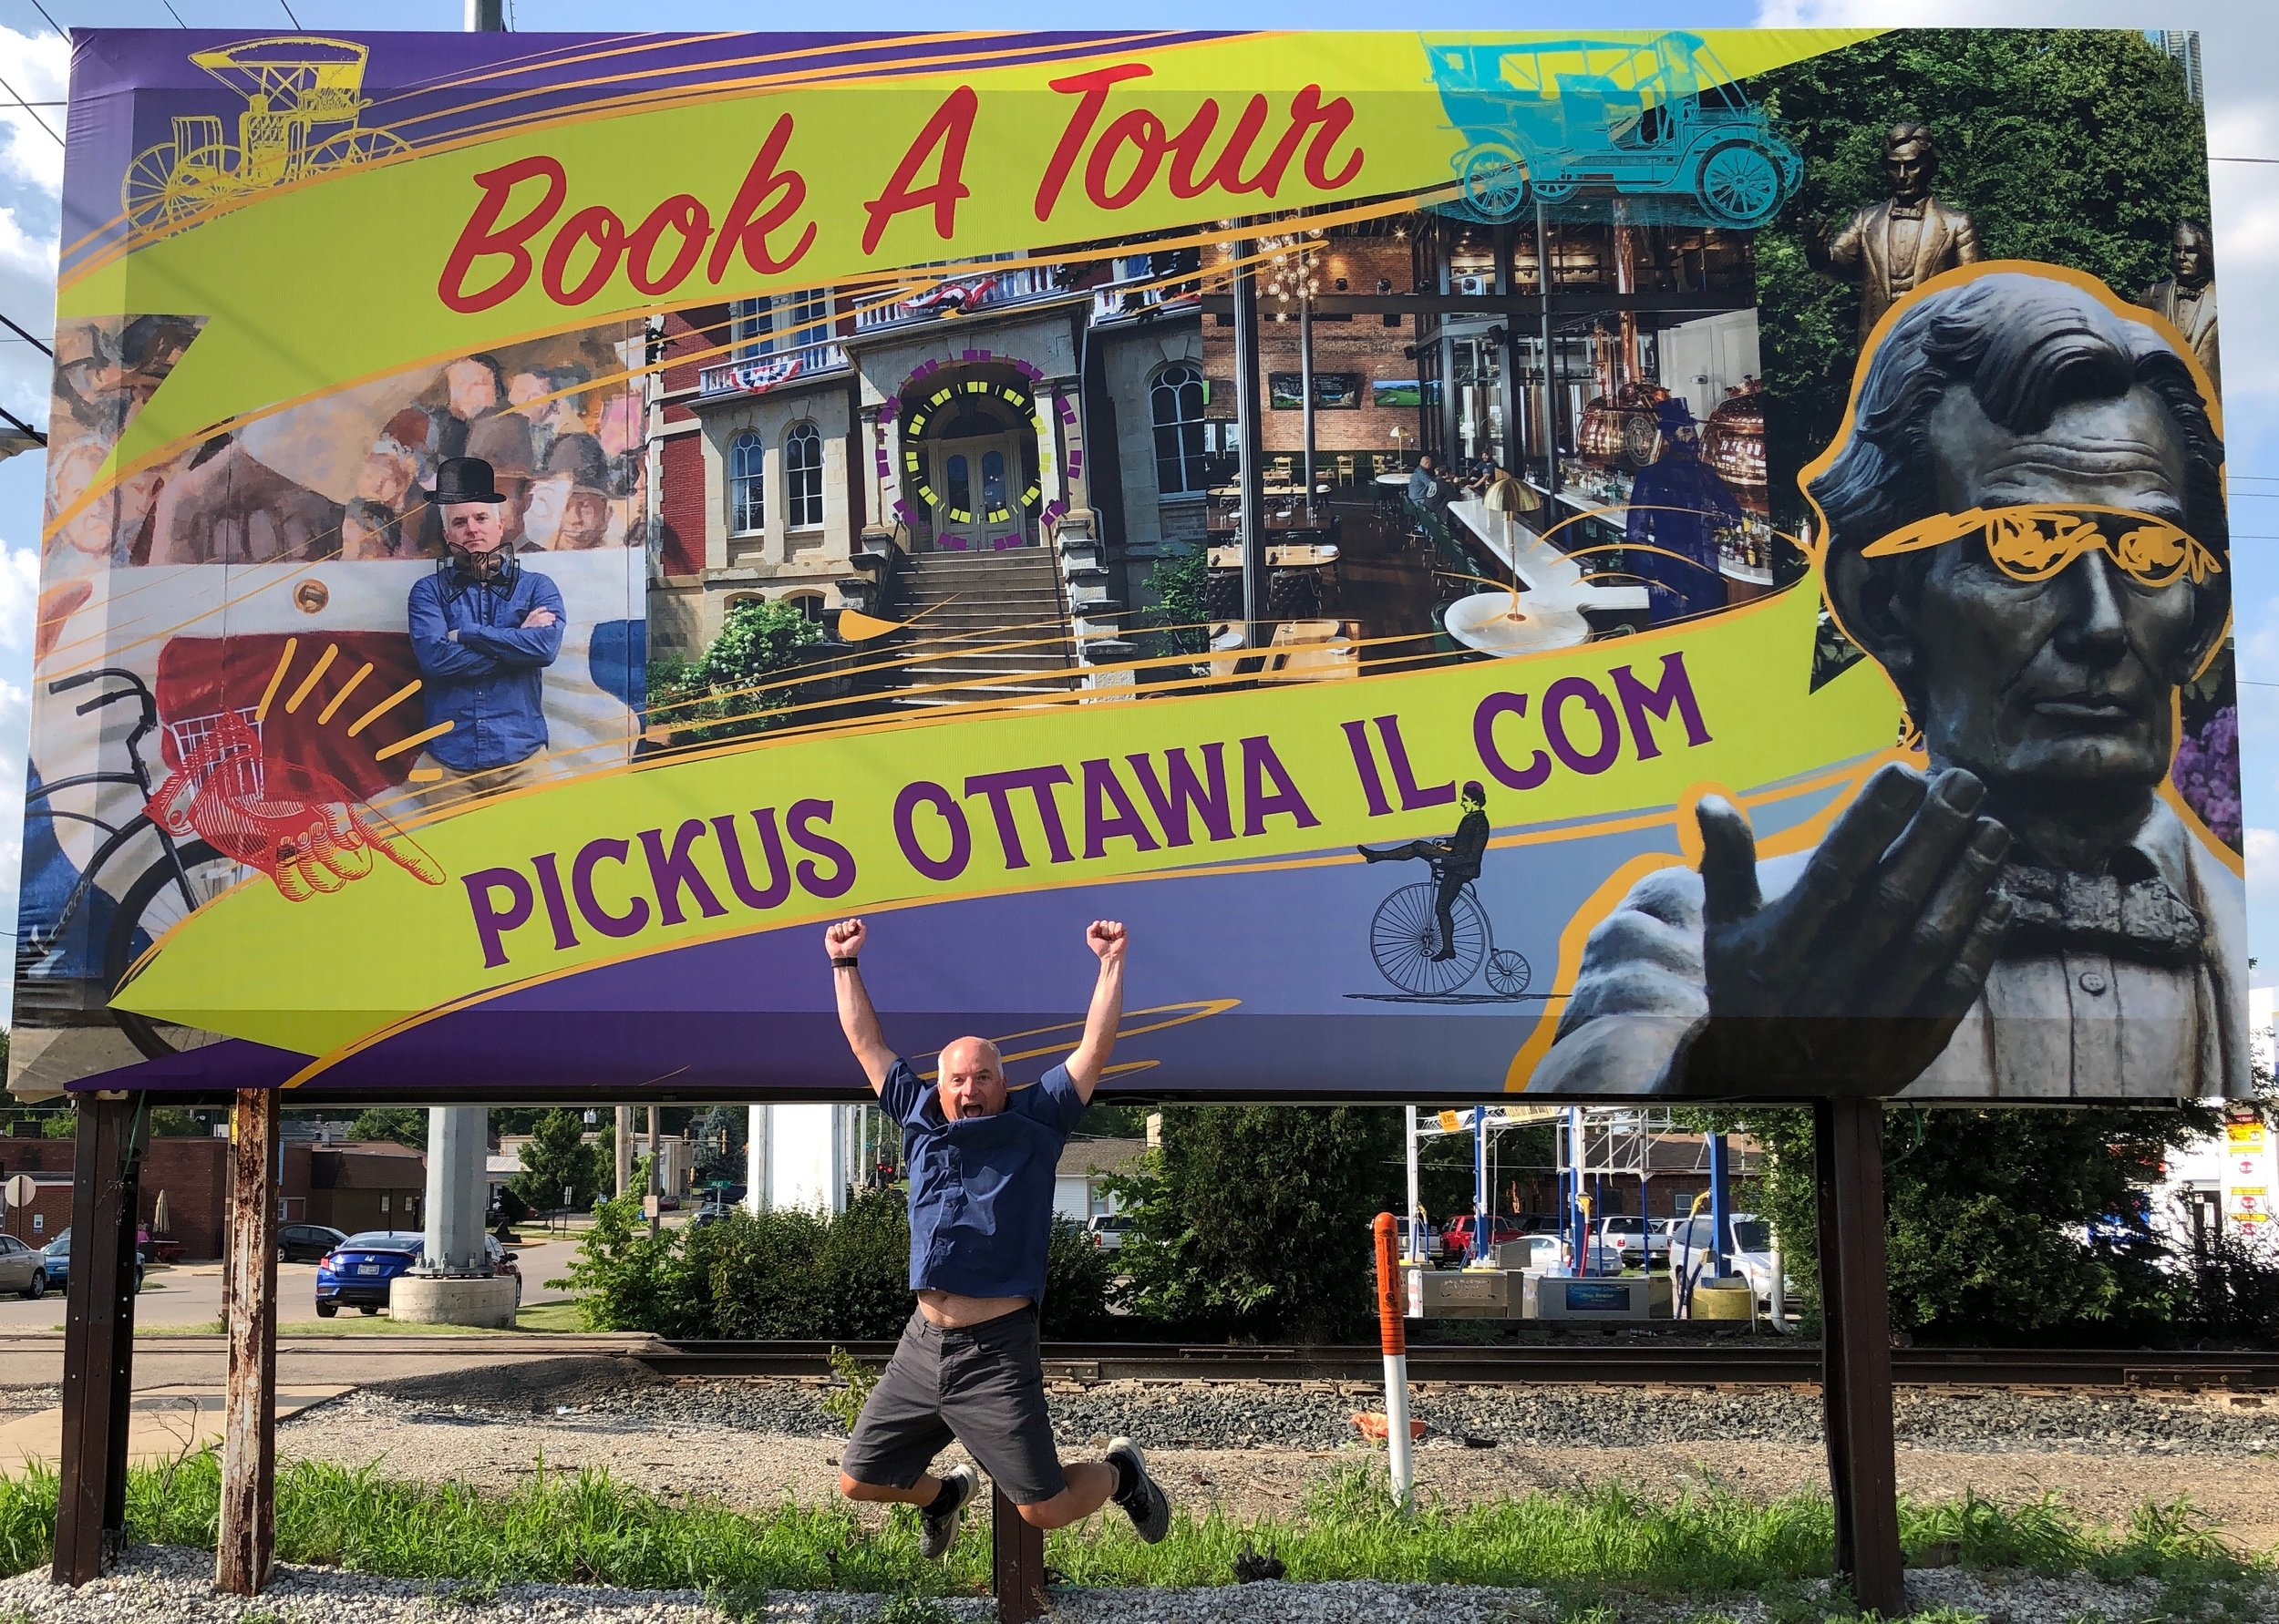 Our tours will make you jump with joy! Click image to see available tours, dates, times & pricing.